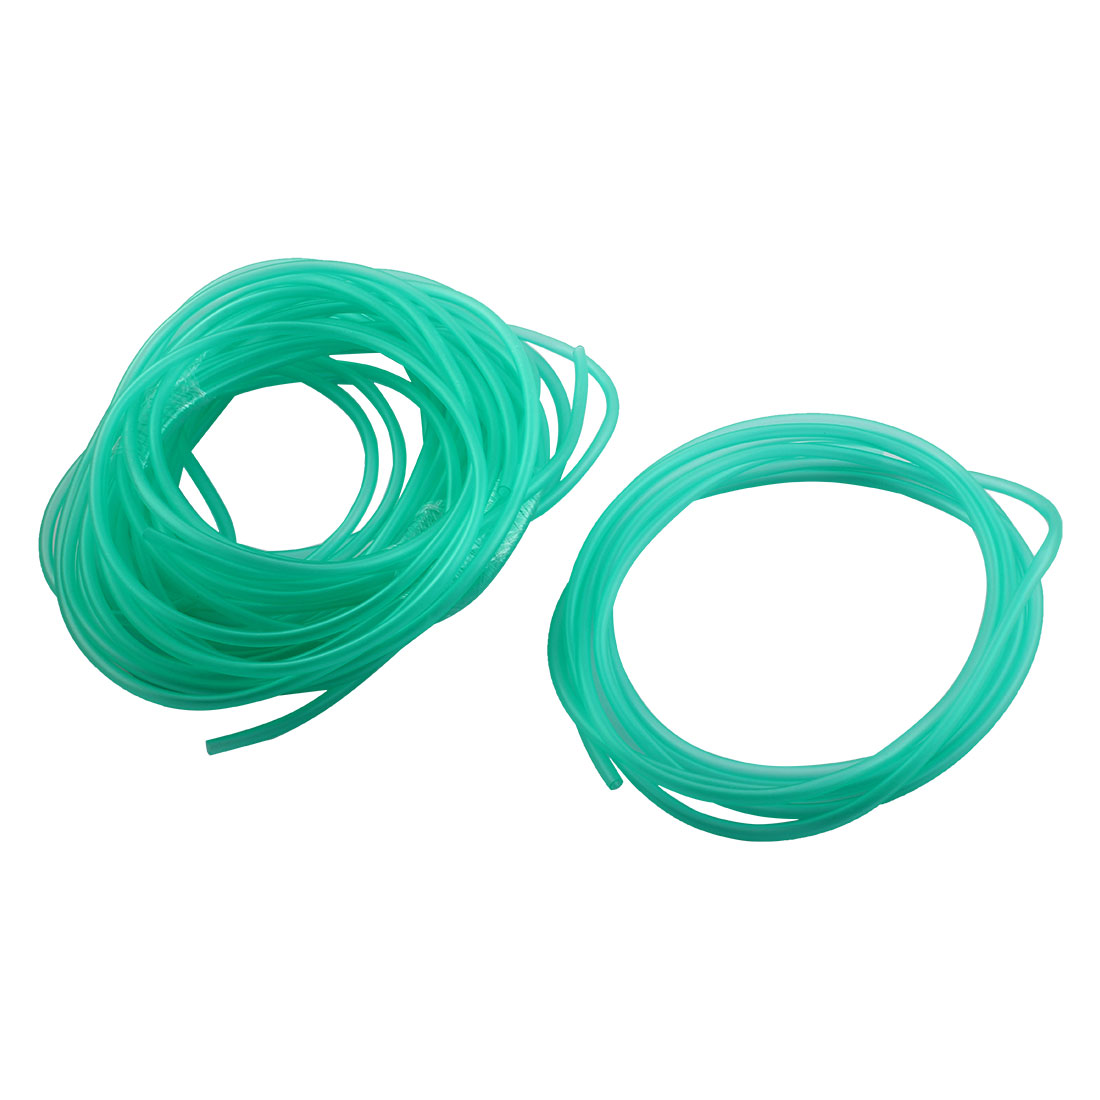 Fish Tank Aquarium Soft Plastic Airstone Pump Oxygen Tubing Hose Clear Green 3Meters Length 6 Pcs